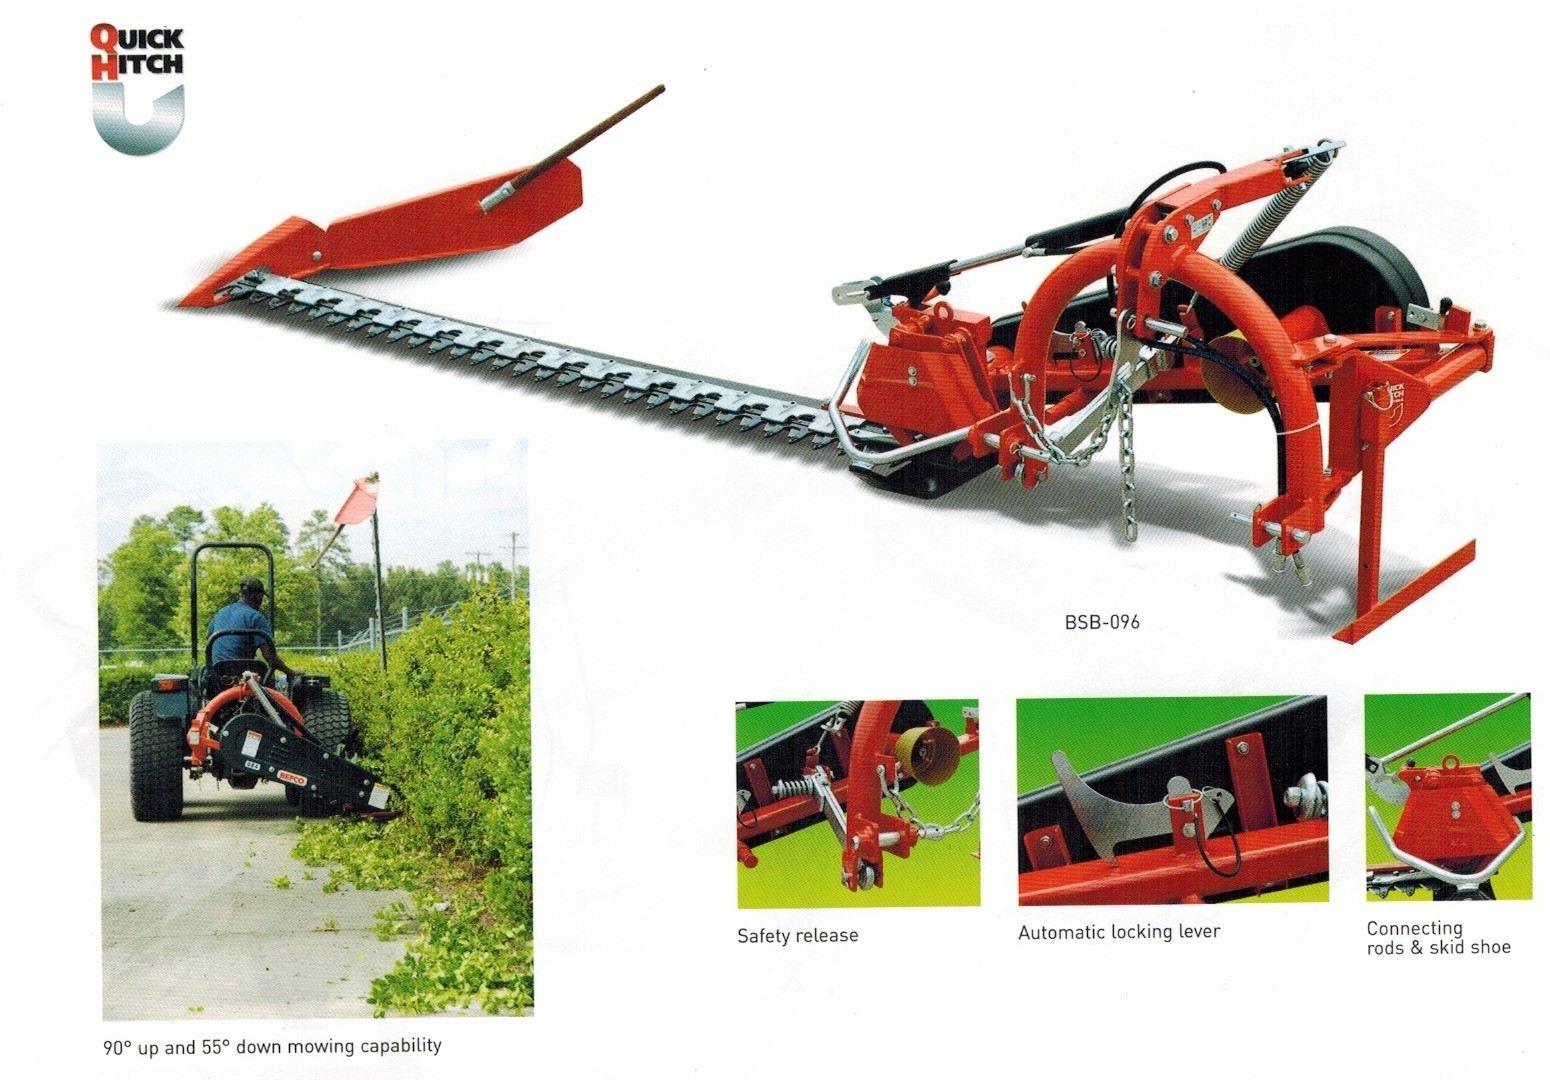 Befco BSB Series Sickle Bar Mowers With Hydraulic Lift On The Sickle Bar